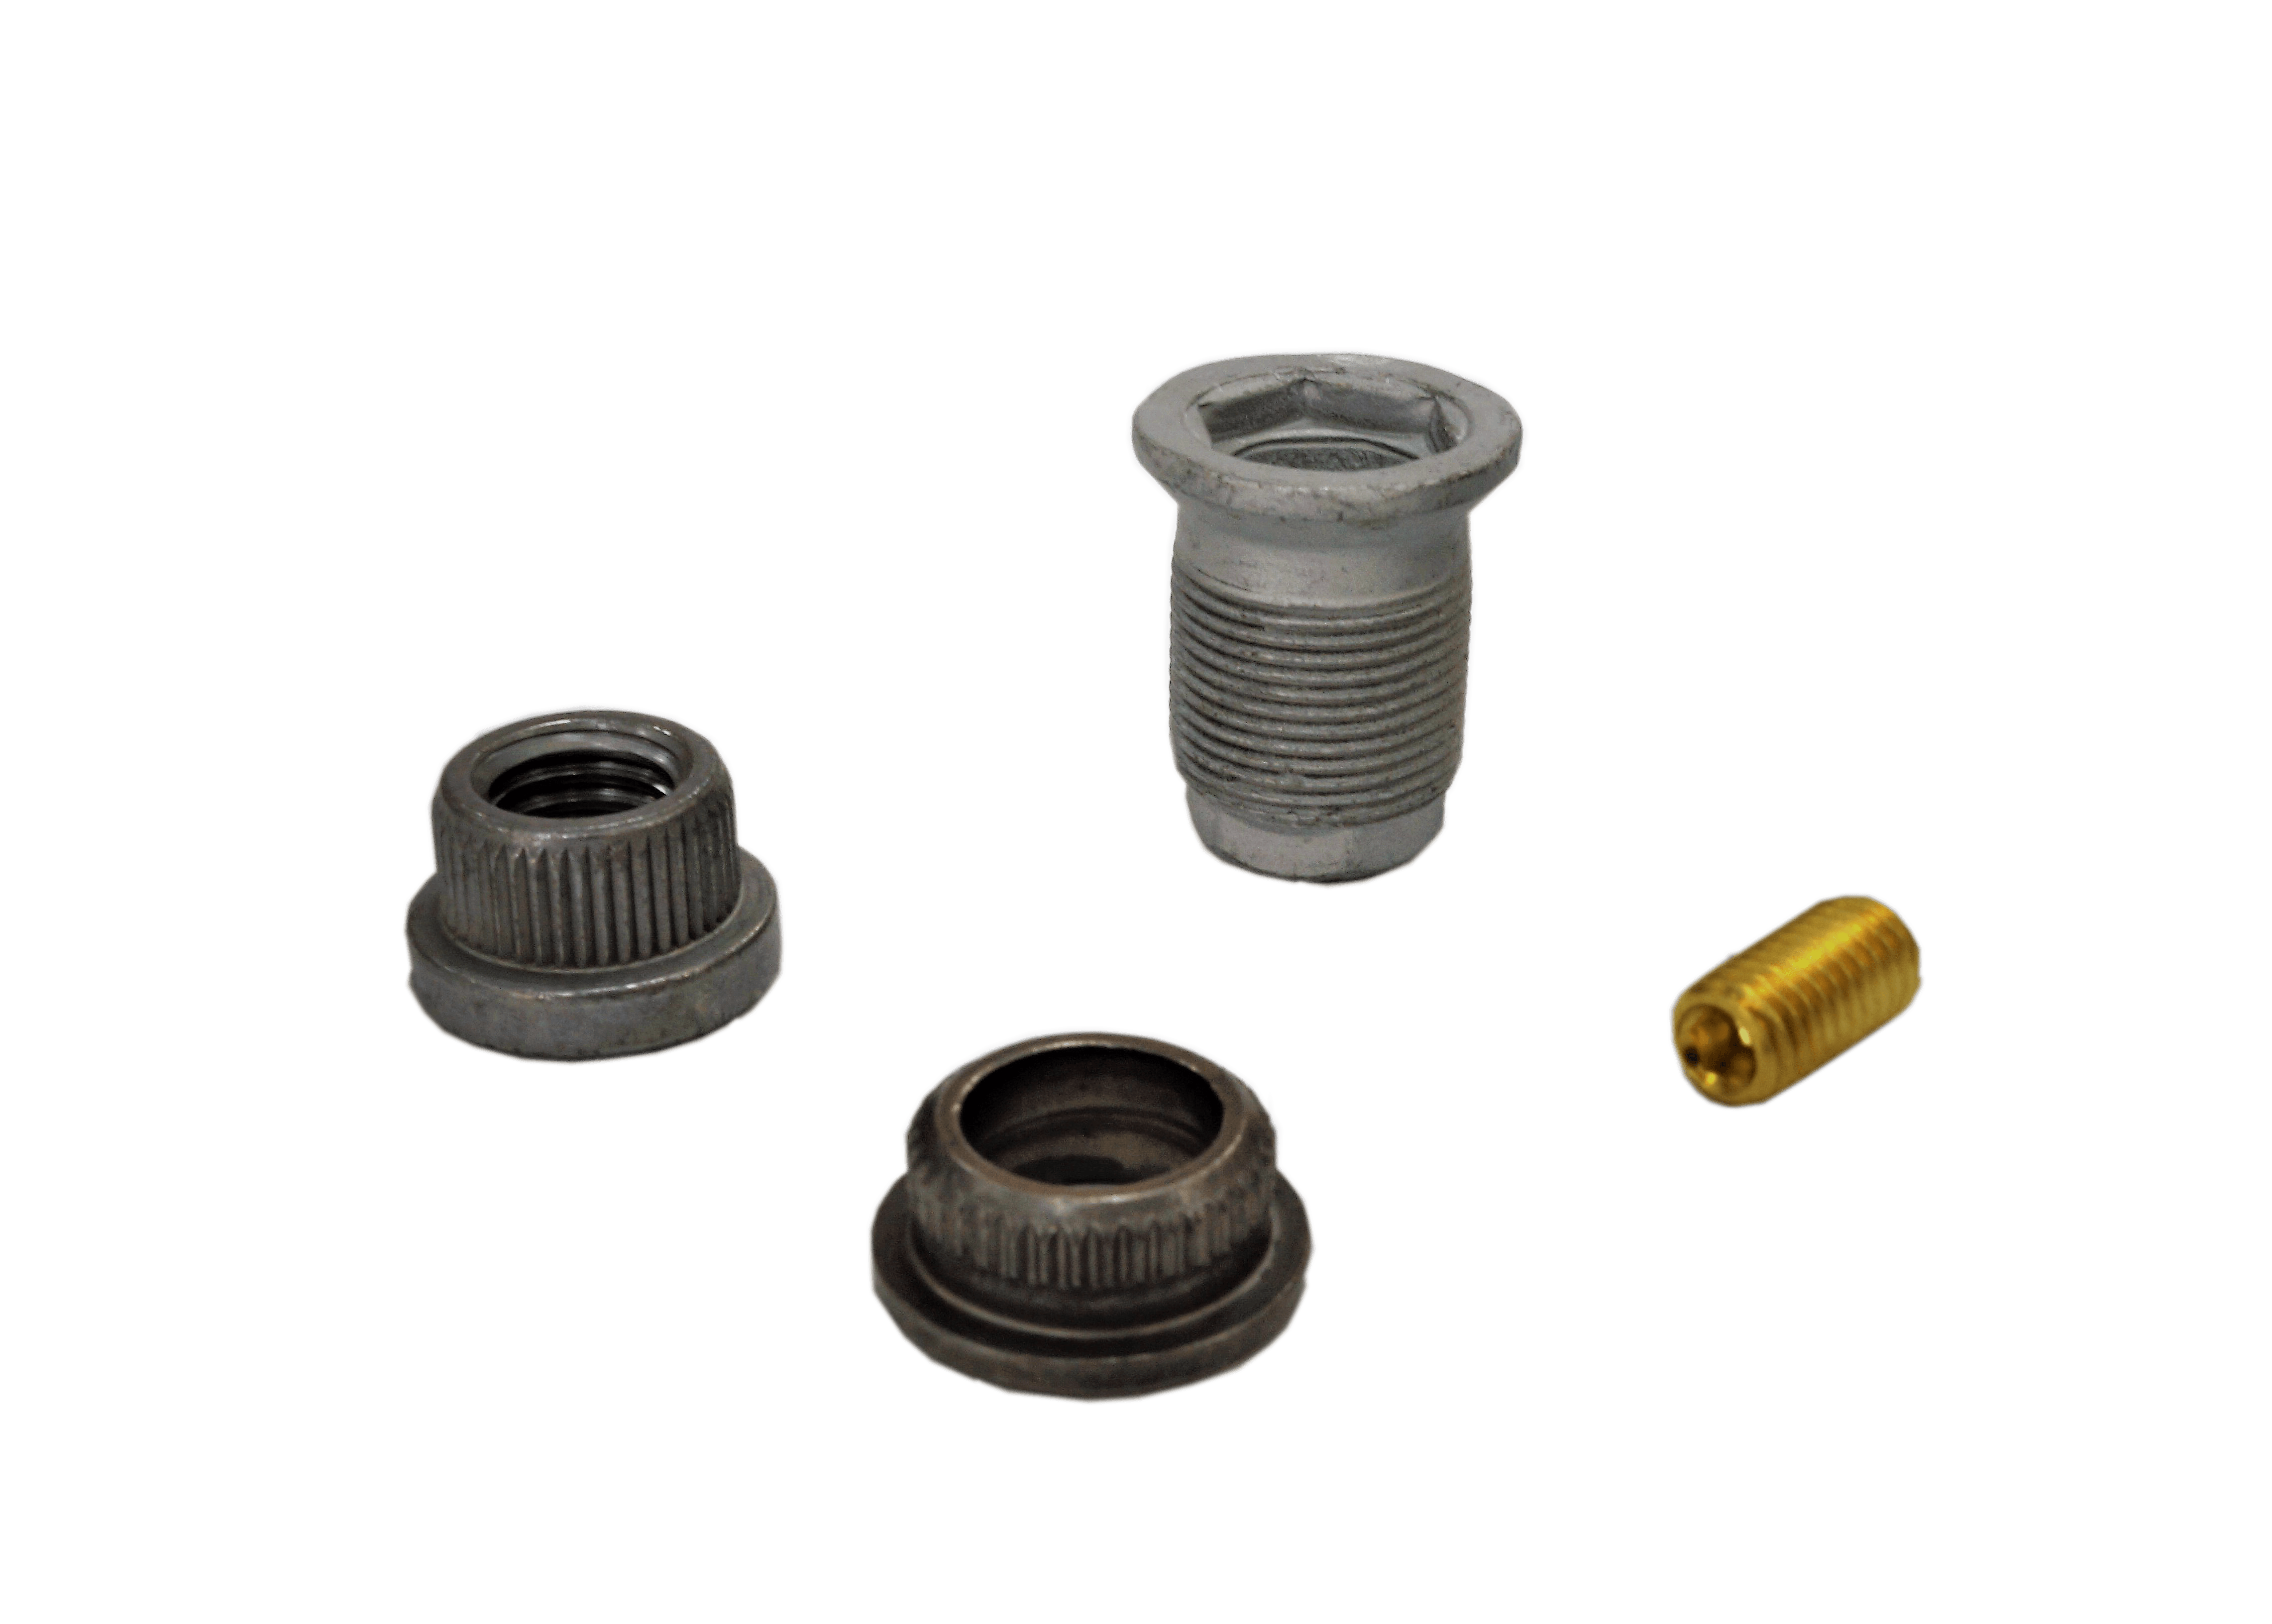 4x4 Pick Up Nuts for Vehicle Fastener made by Sunny Screw Industry 三能螺栓工業股份有限公司 - MatchSupplier.com